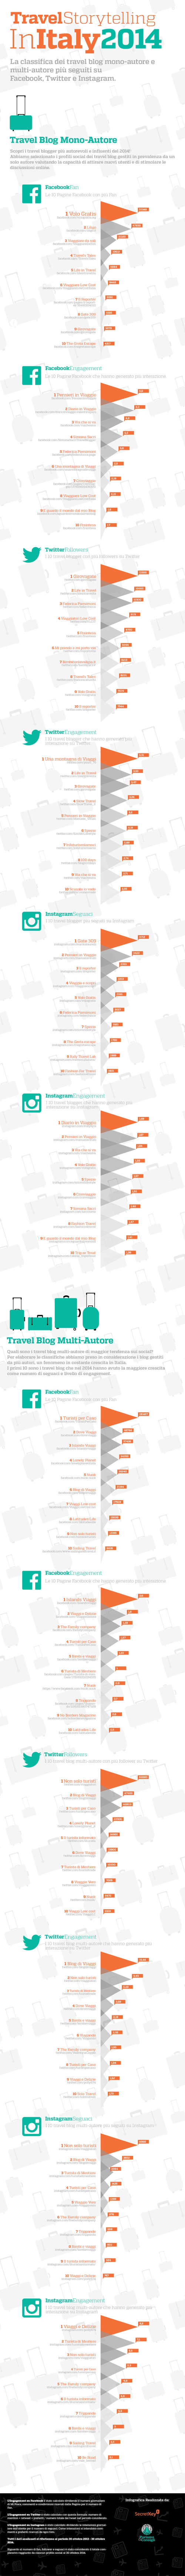 Classifica Migliori Travel Blog 2014